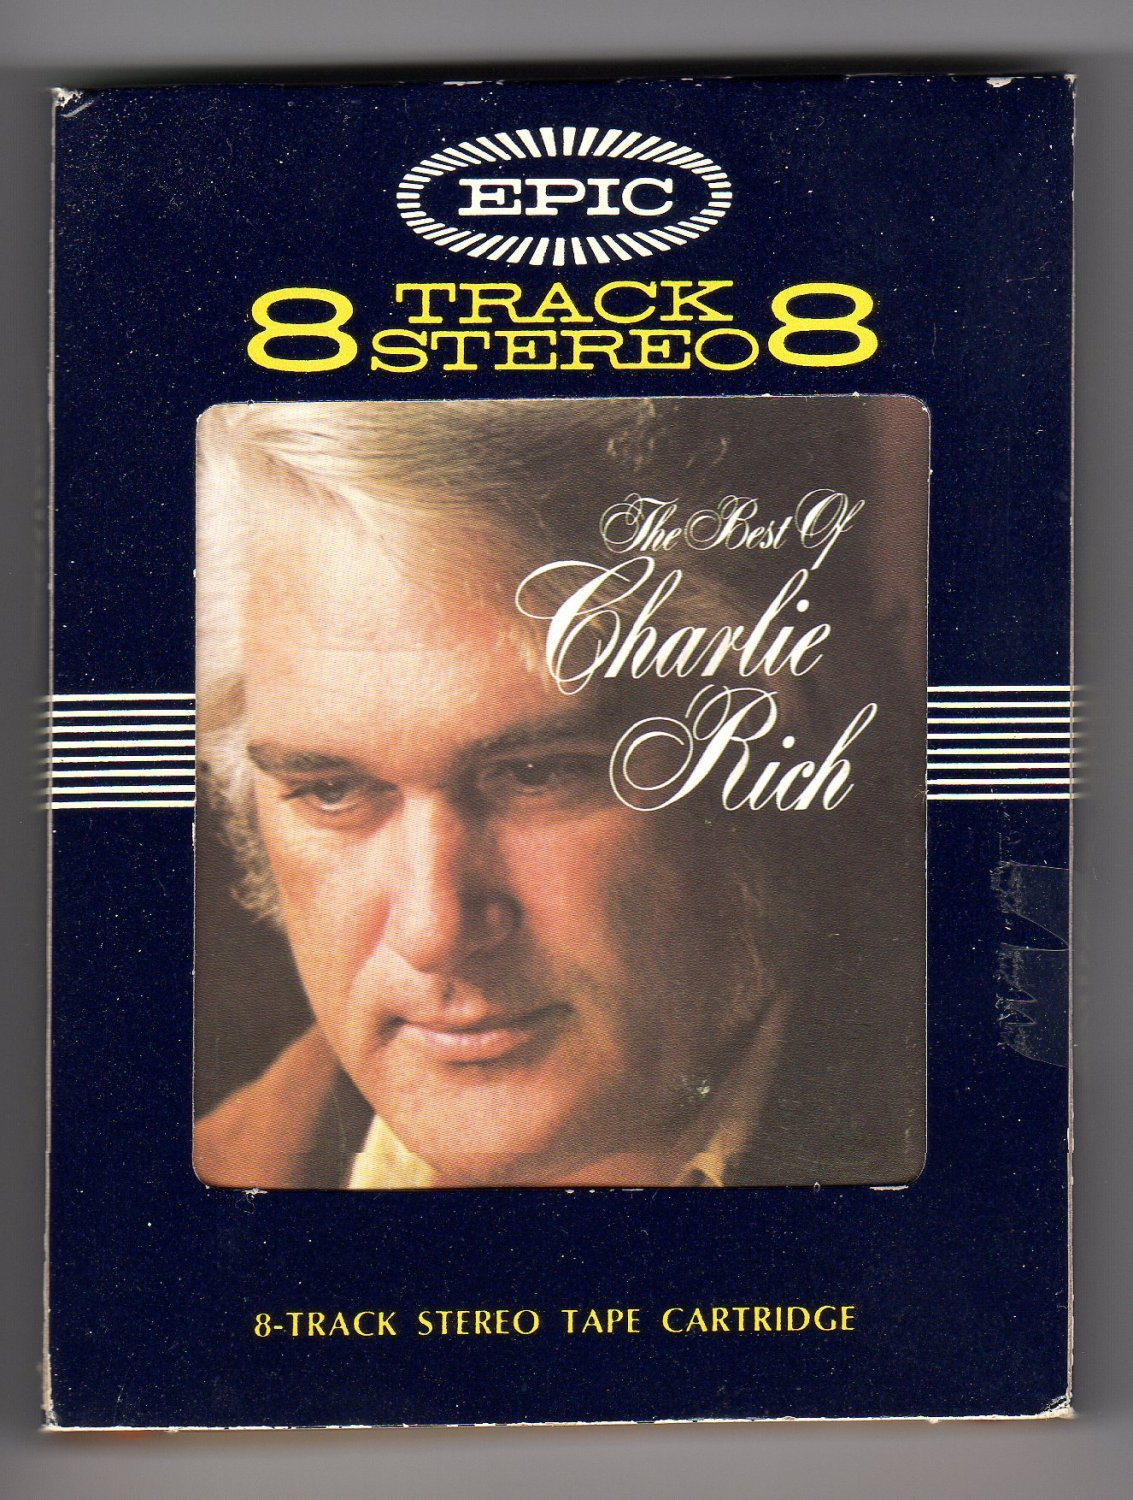 Charlie Rich - The Best Of Charlie Rich 1972 EPIC A32 8-TRACK TAPE